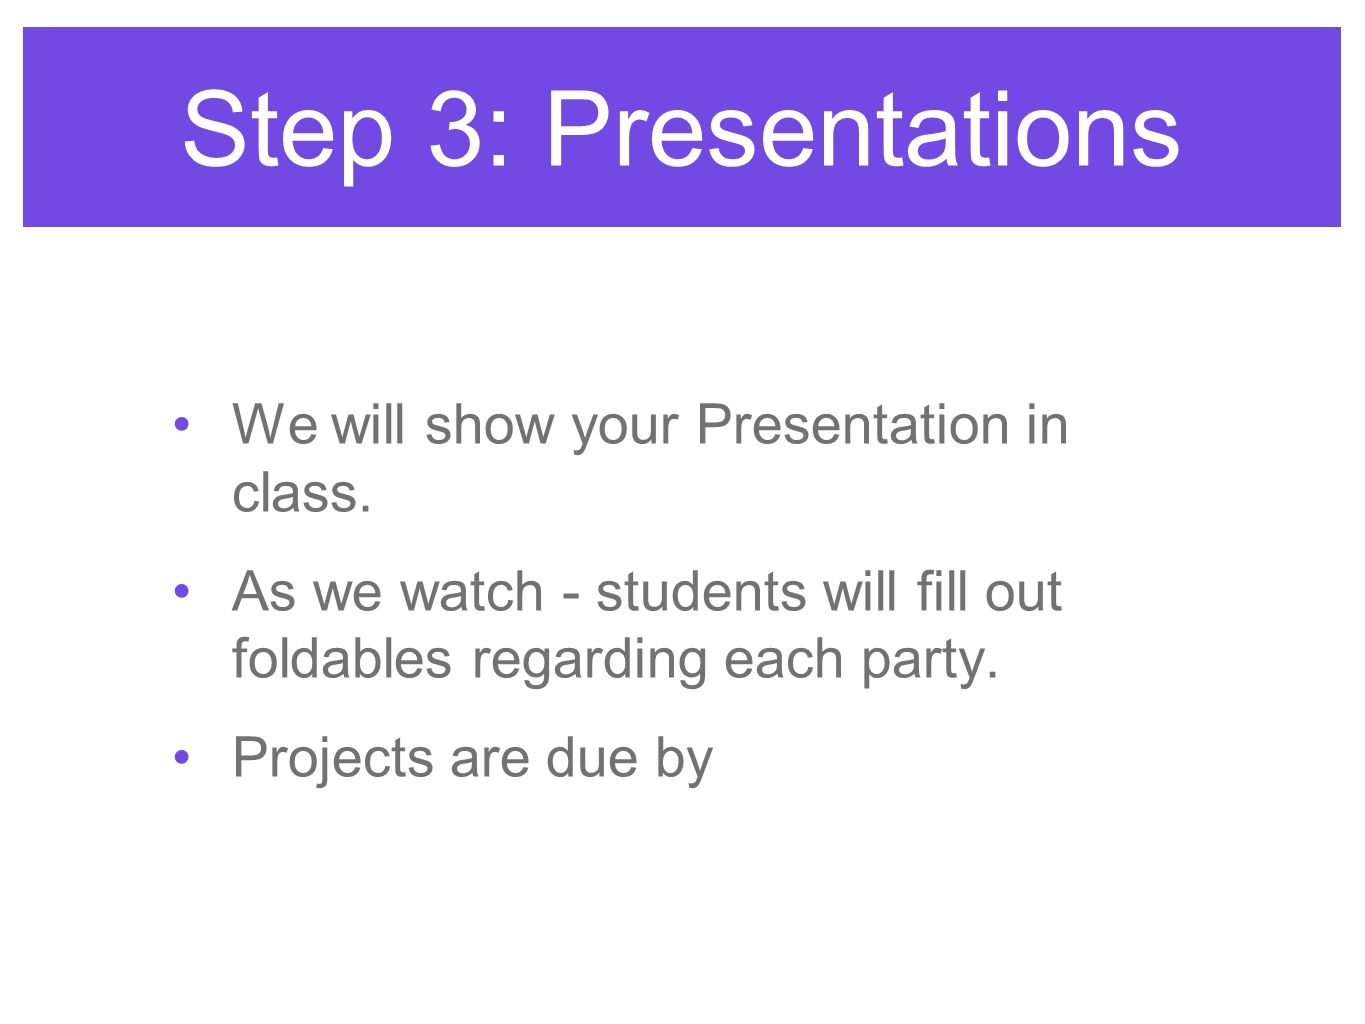 Step 3: Presentations We will show your Presentation in class. As we watch - students will fill out foldables regarding each party. Projects are due b